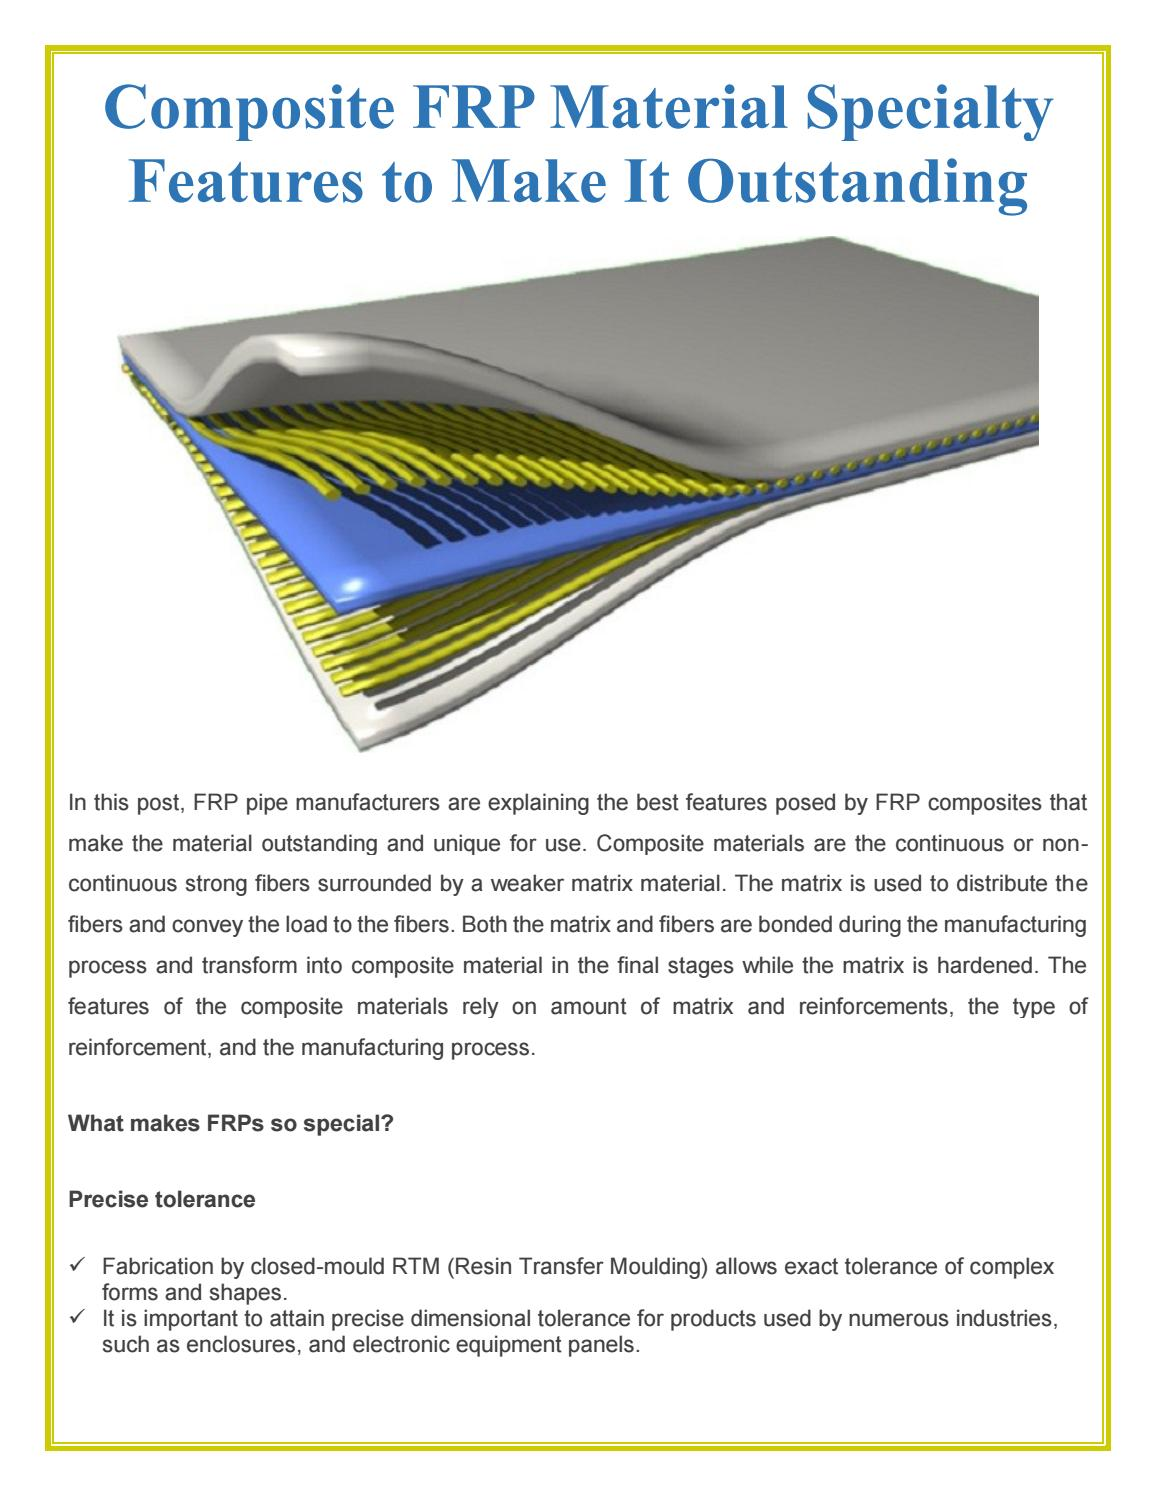 Composite frp material specialty features to make it